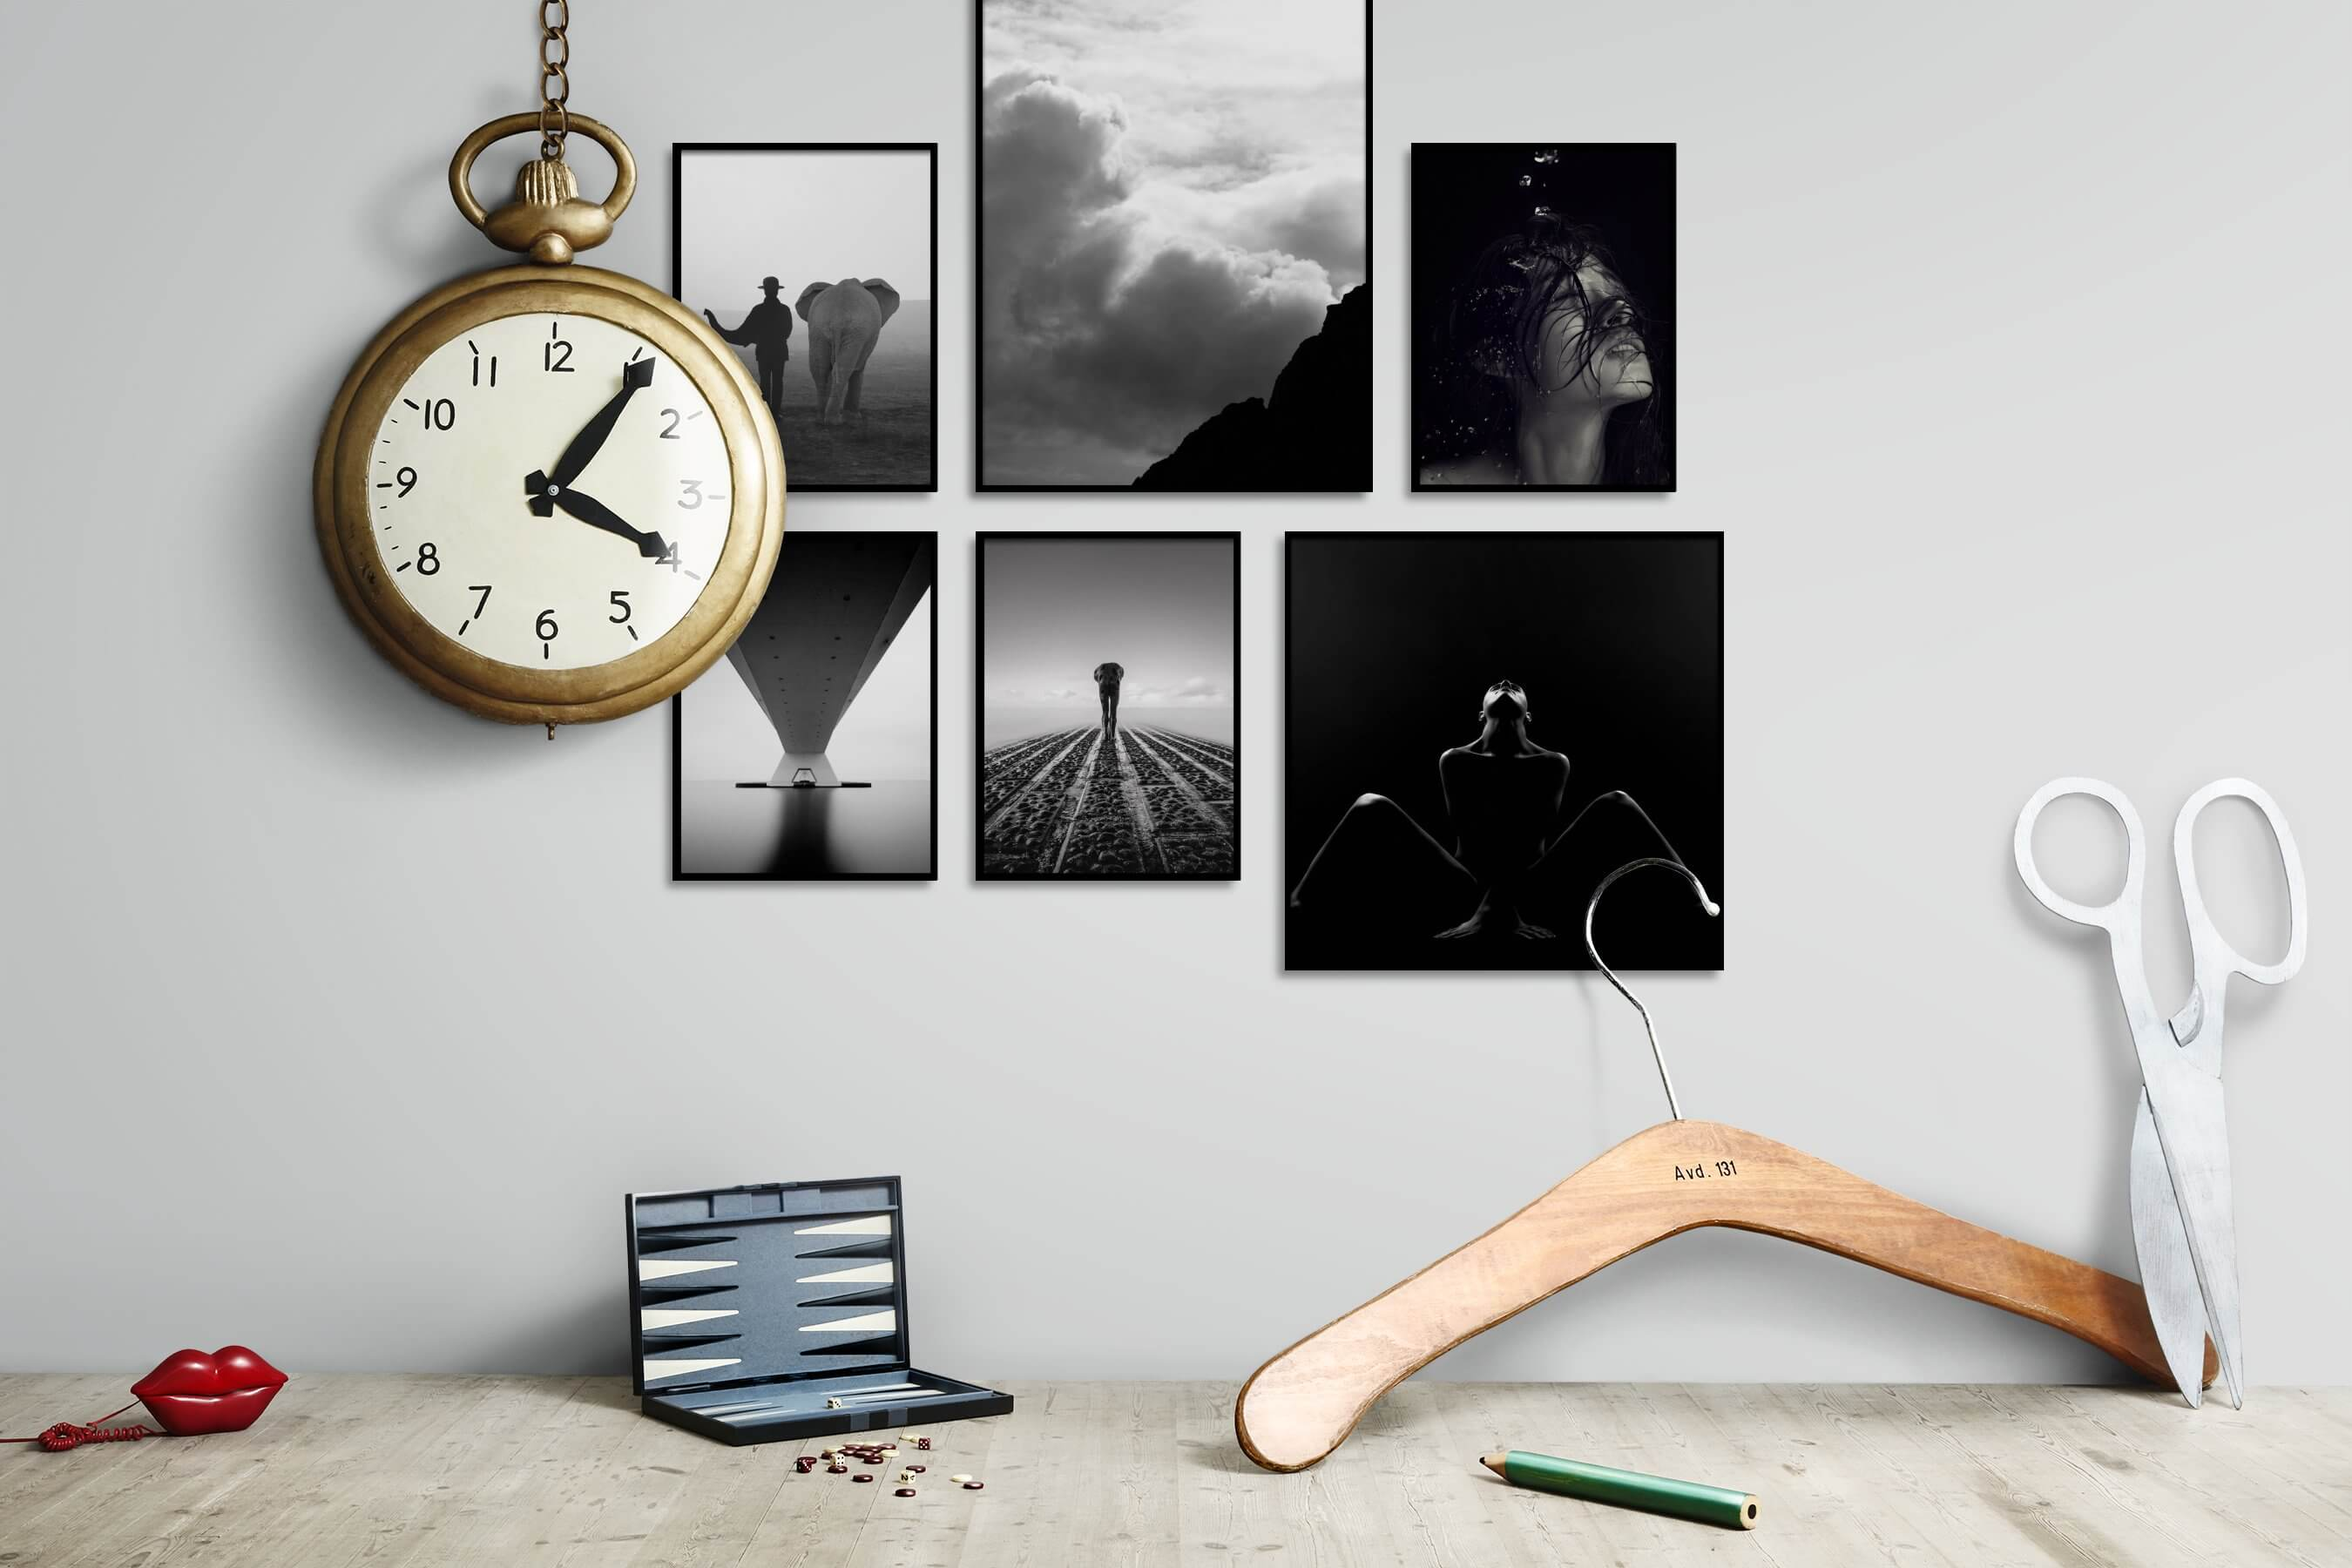 Gallery wall idea with six framed pictures arranged on a wall depicting Black & White, Animals, For the Moderate, Nature, Mindfulness, Artsy, Fashion & Beauty, Dark Tones, and For the Minimalist